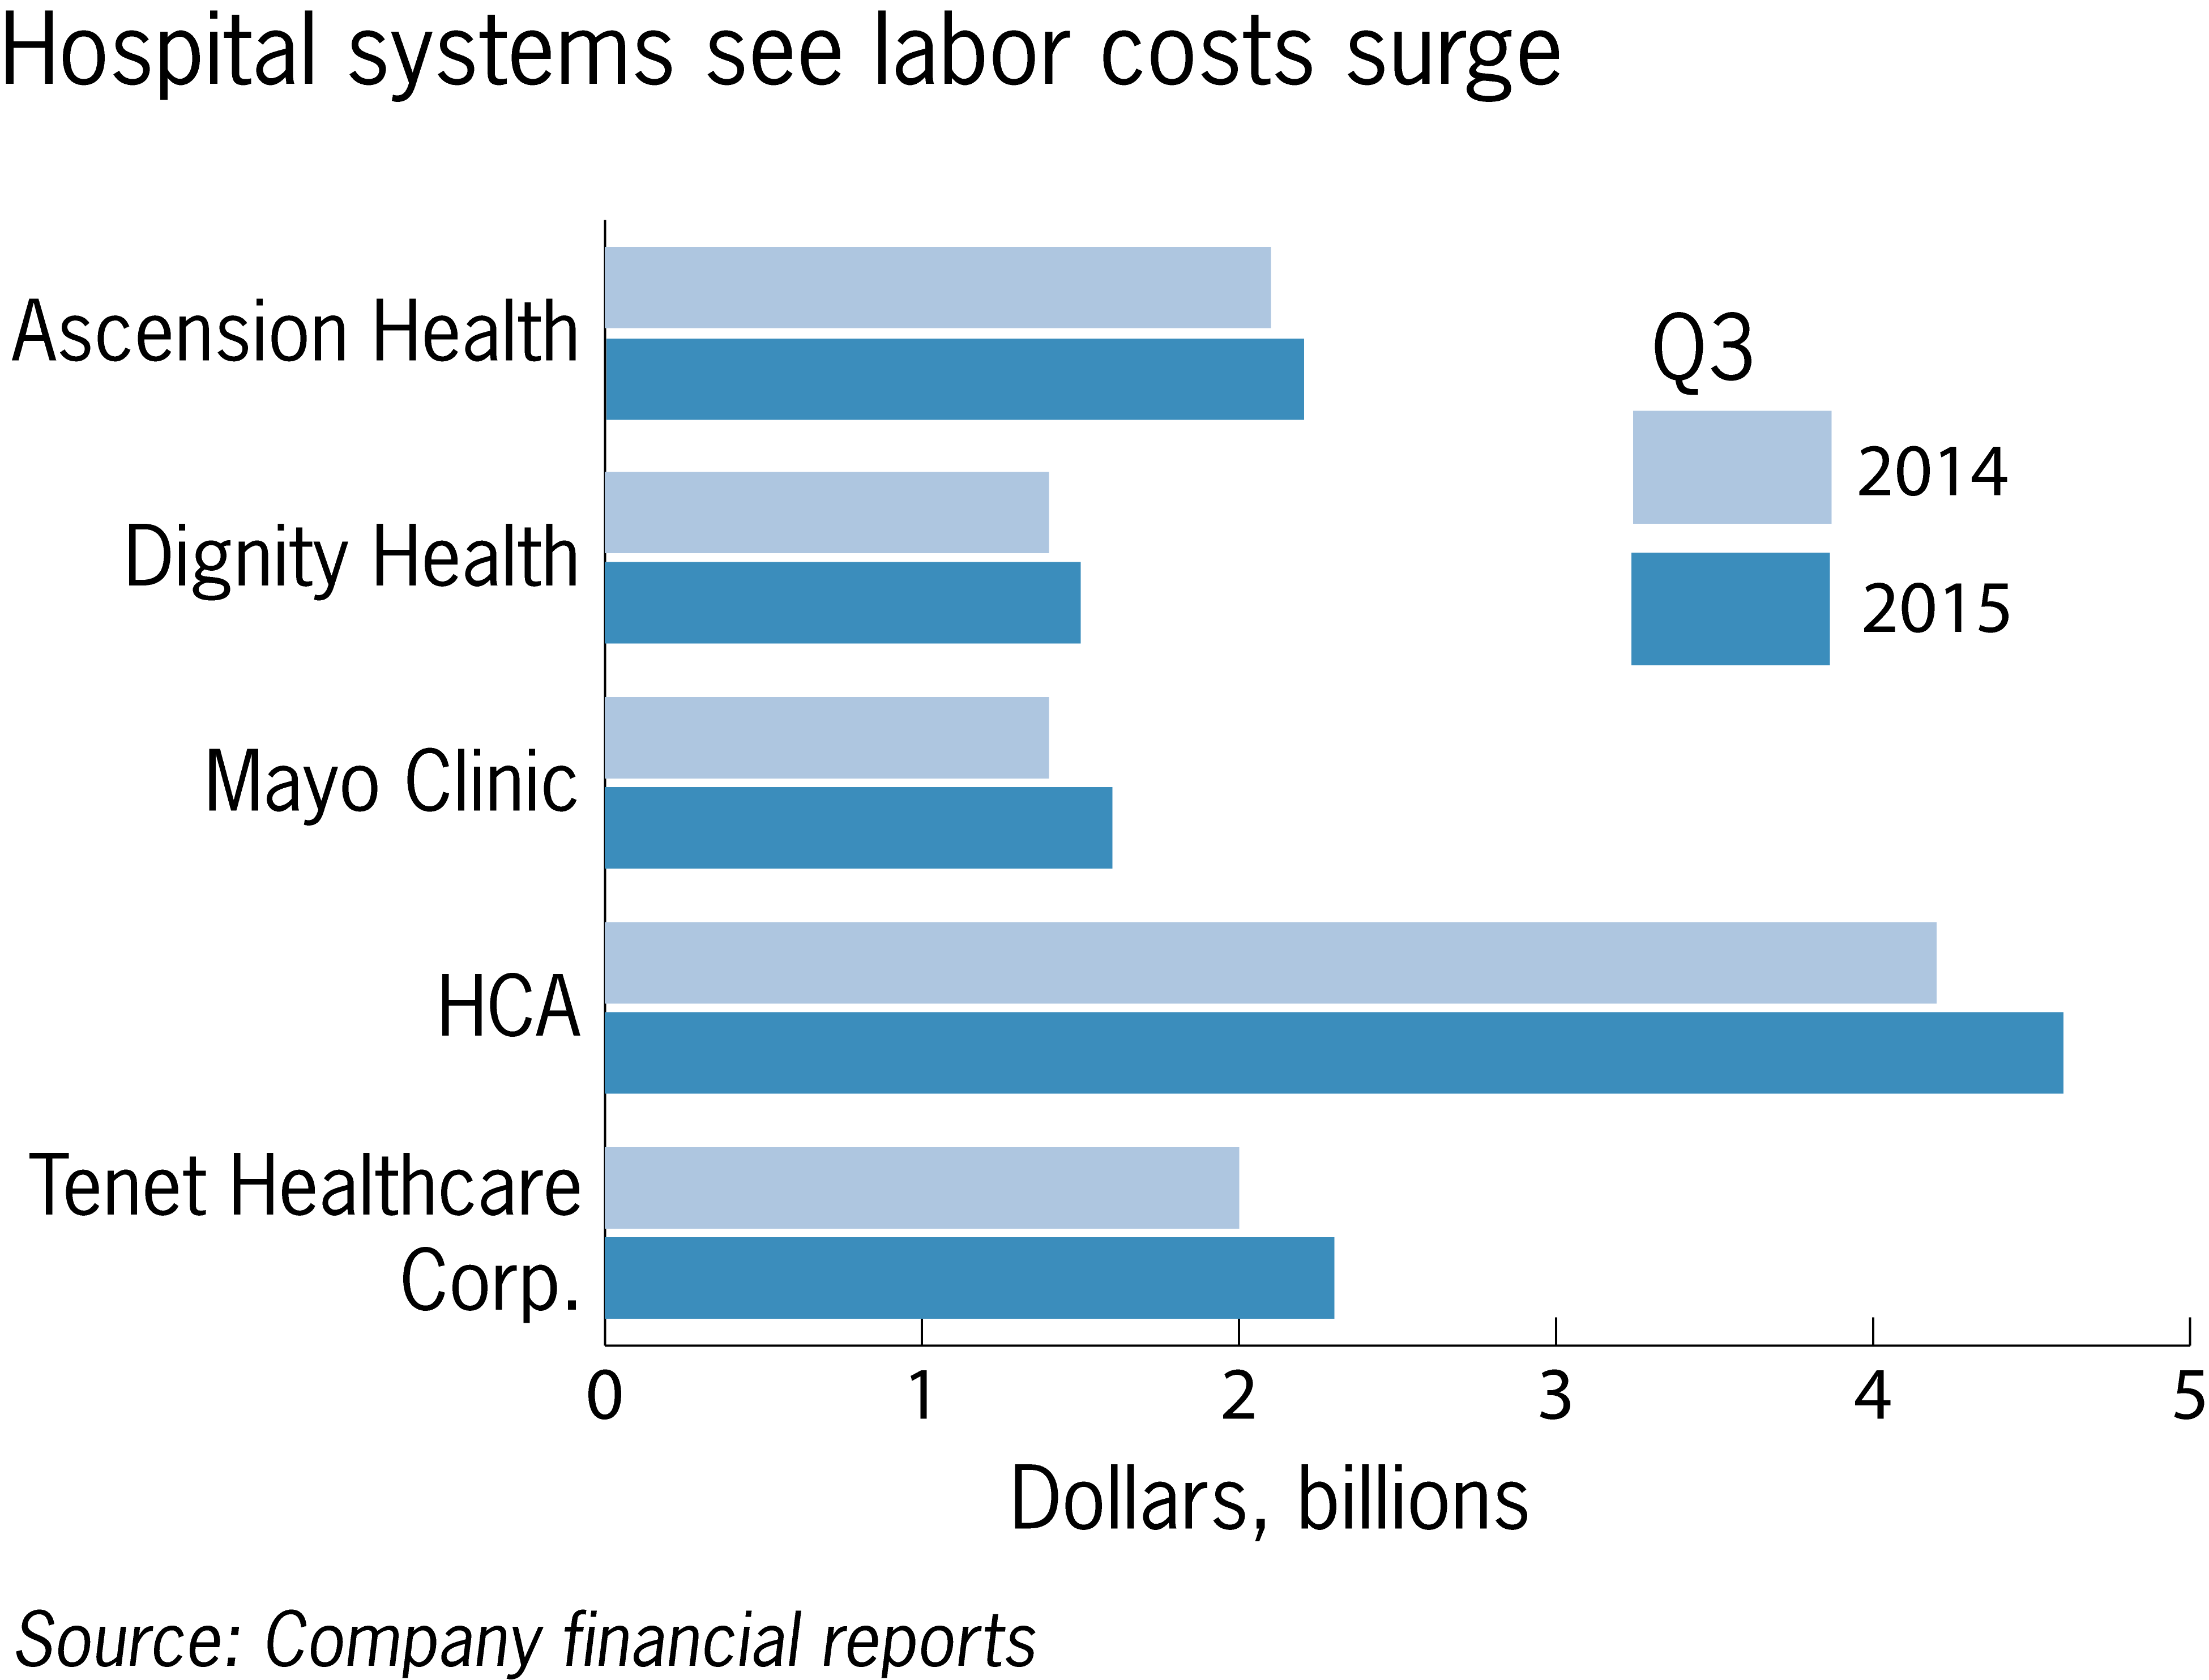 Hospital labor costs